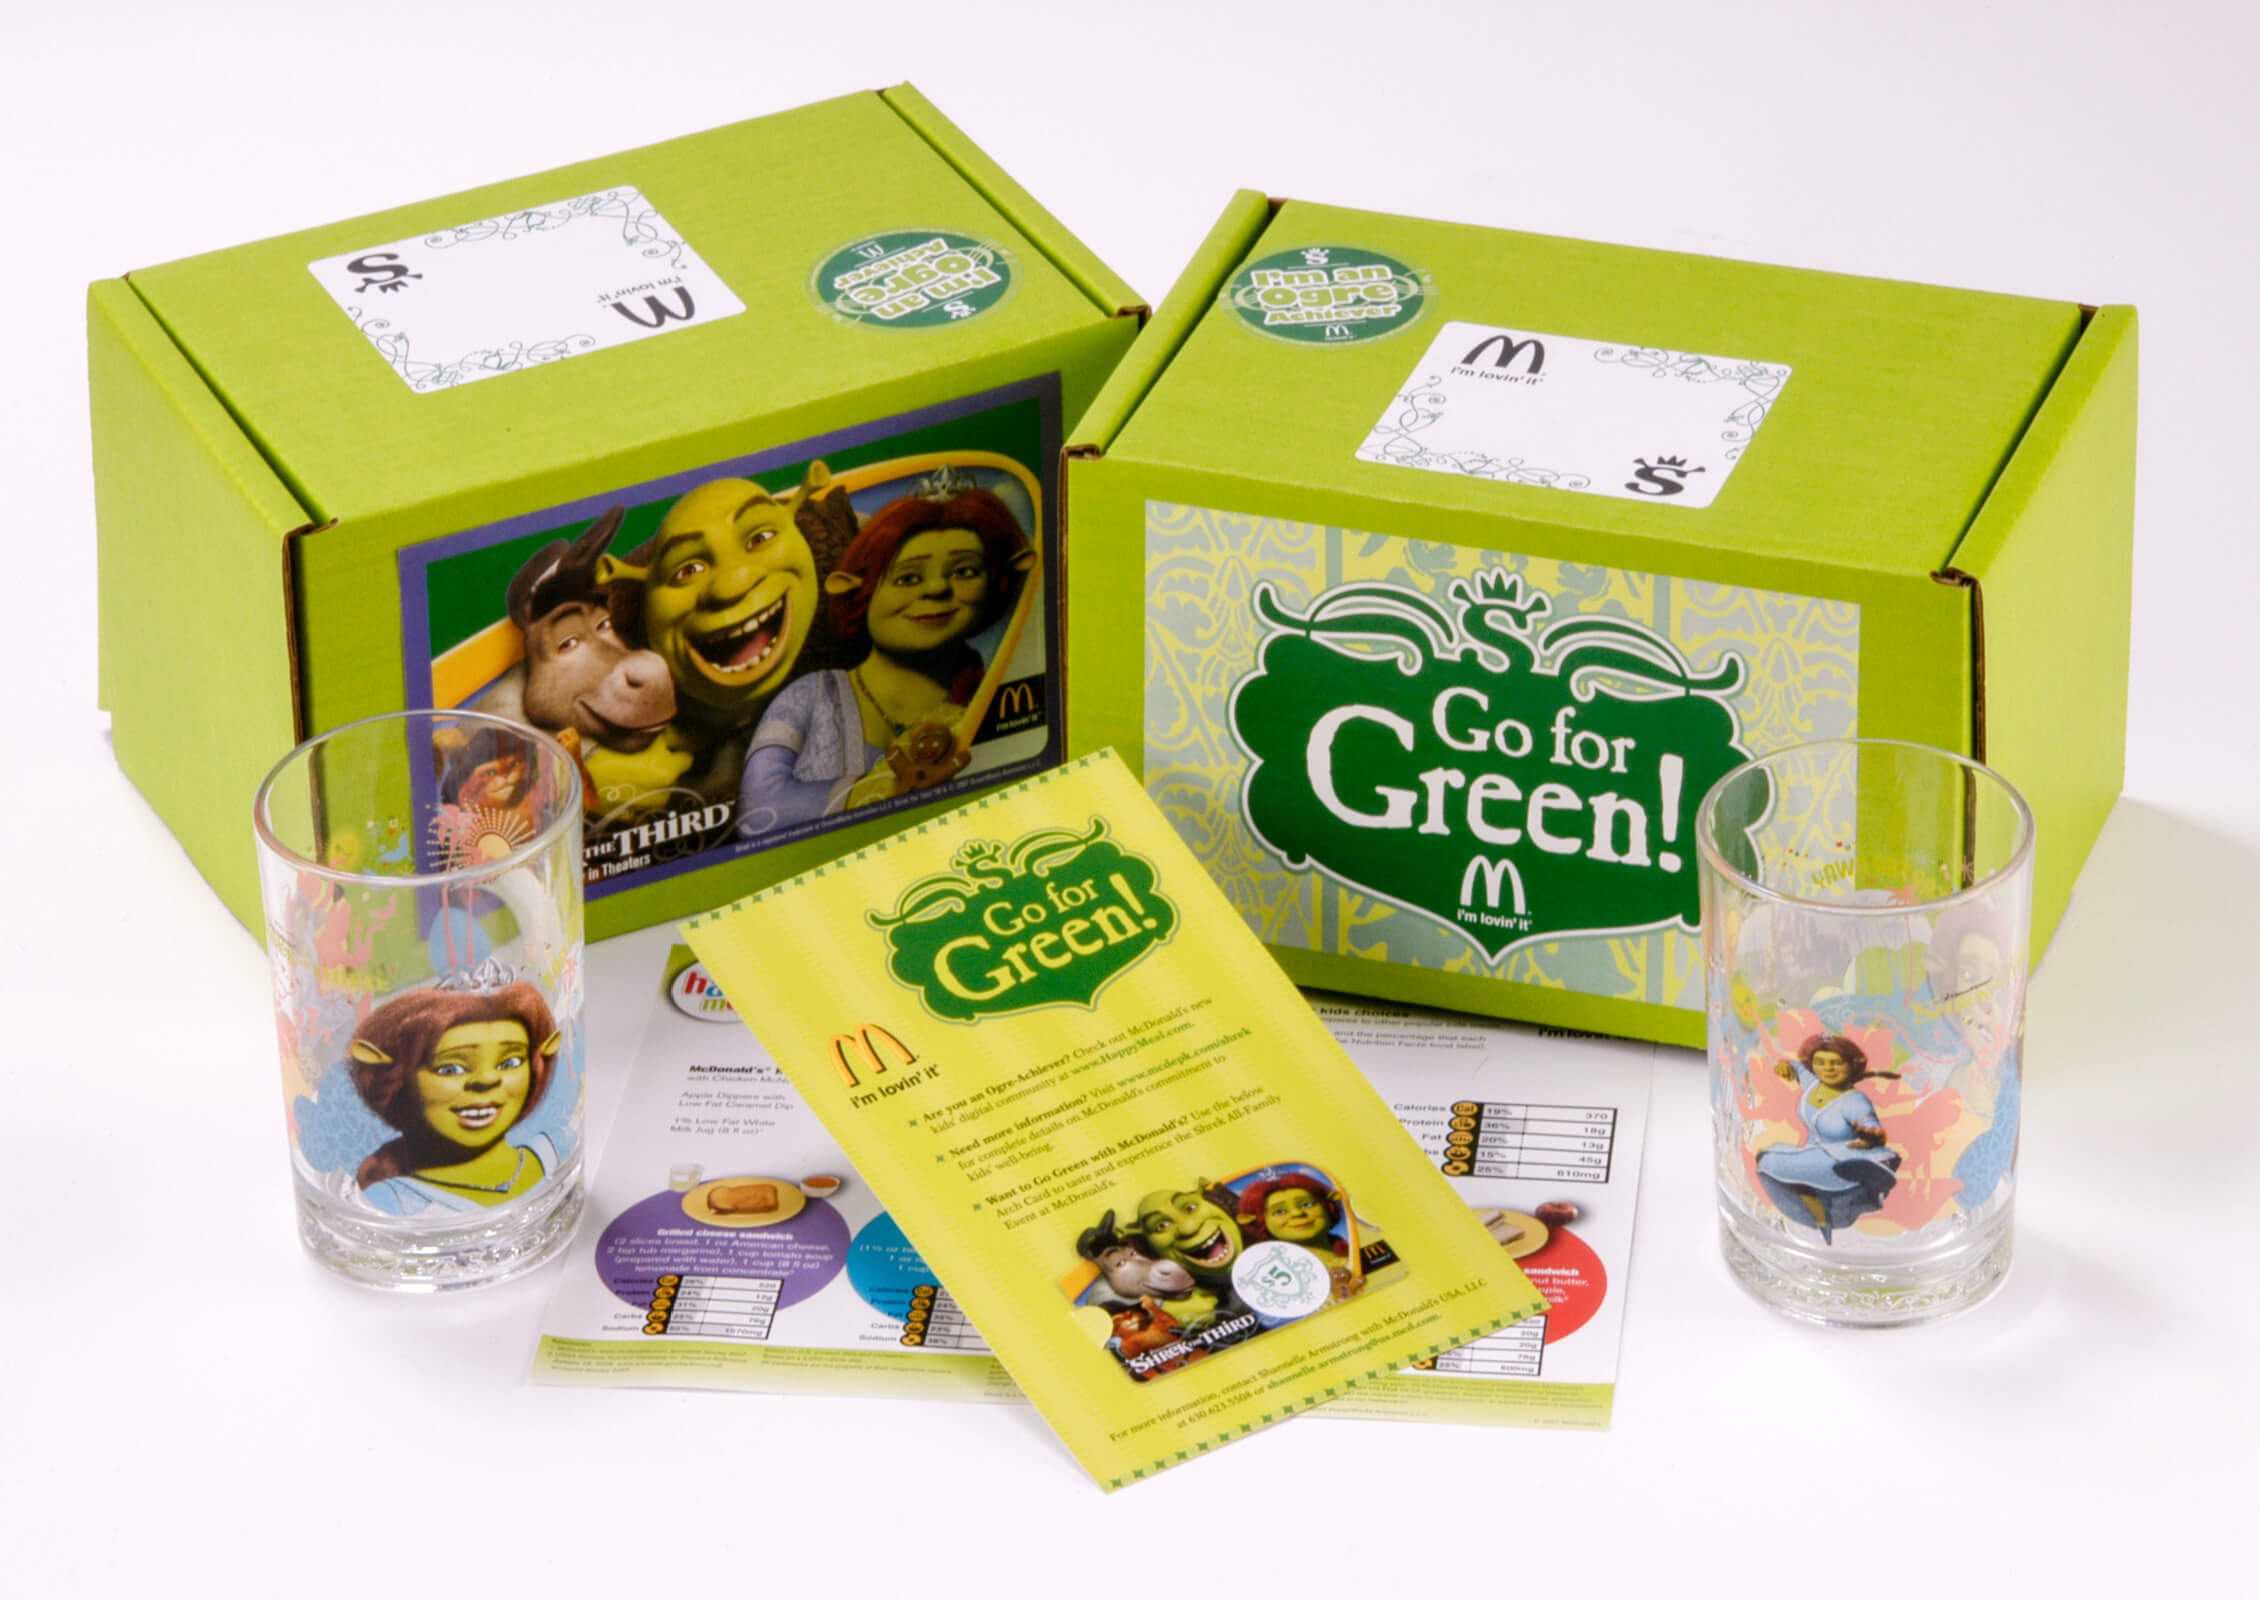 dtd mcds press kits shrek image